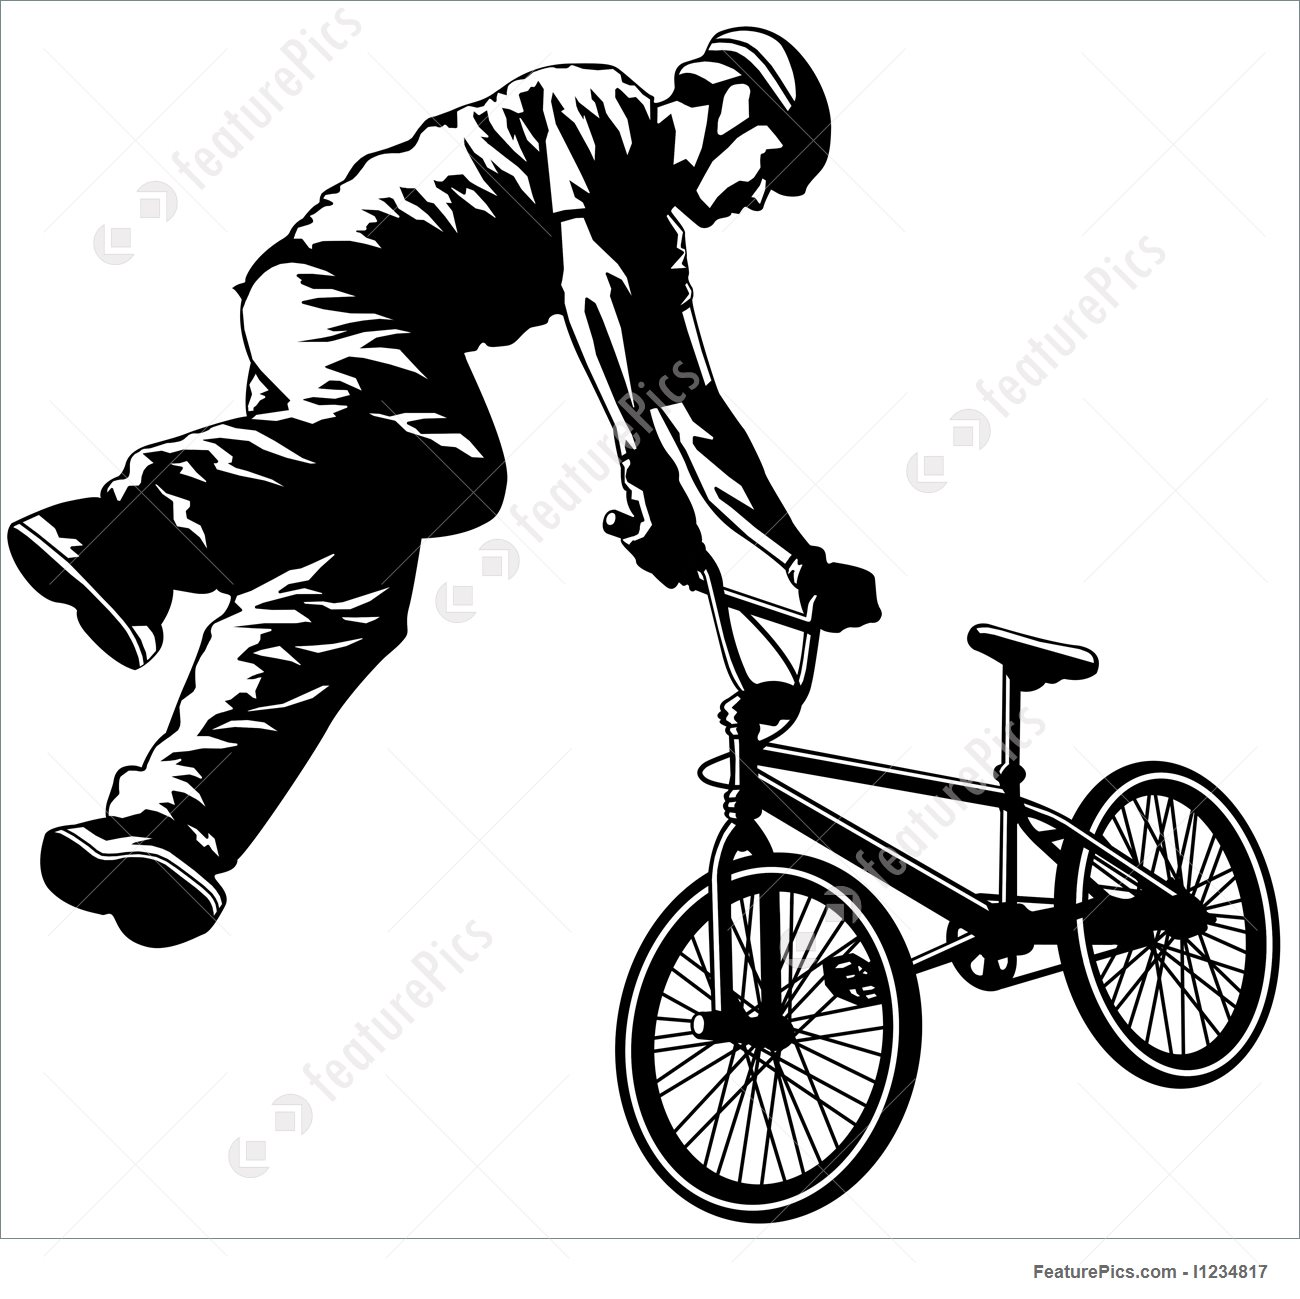 1300x1299 Flying Bmx Stock Illustration I1234817